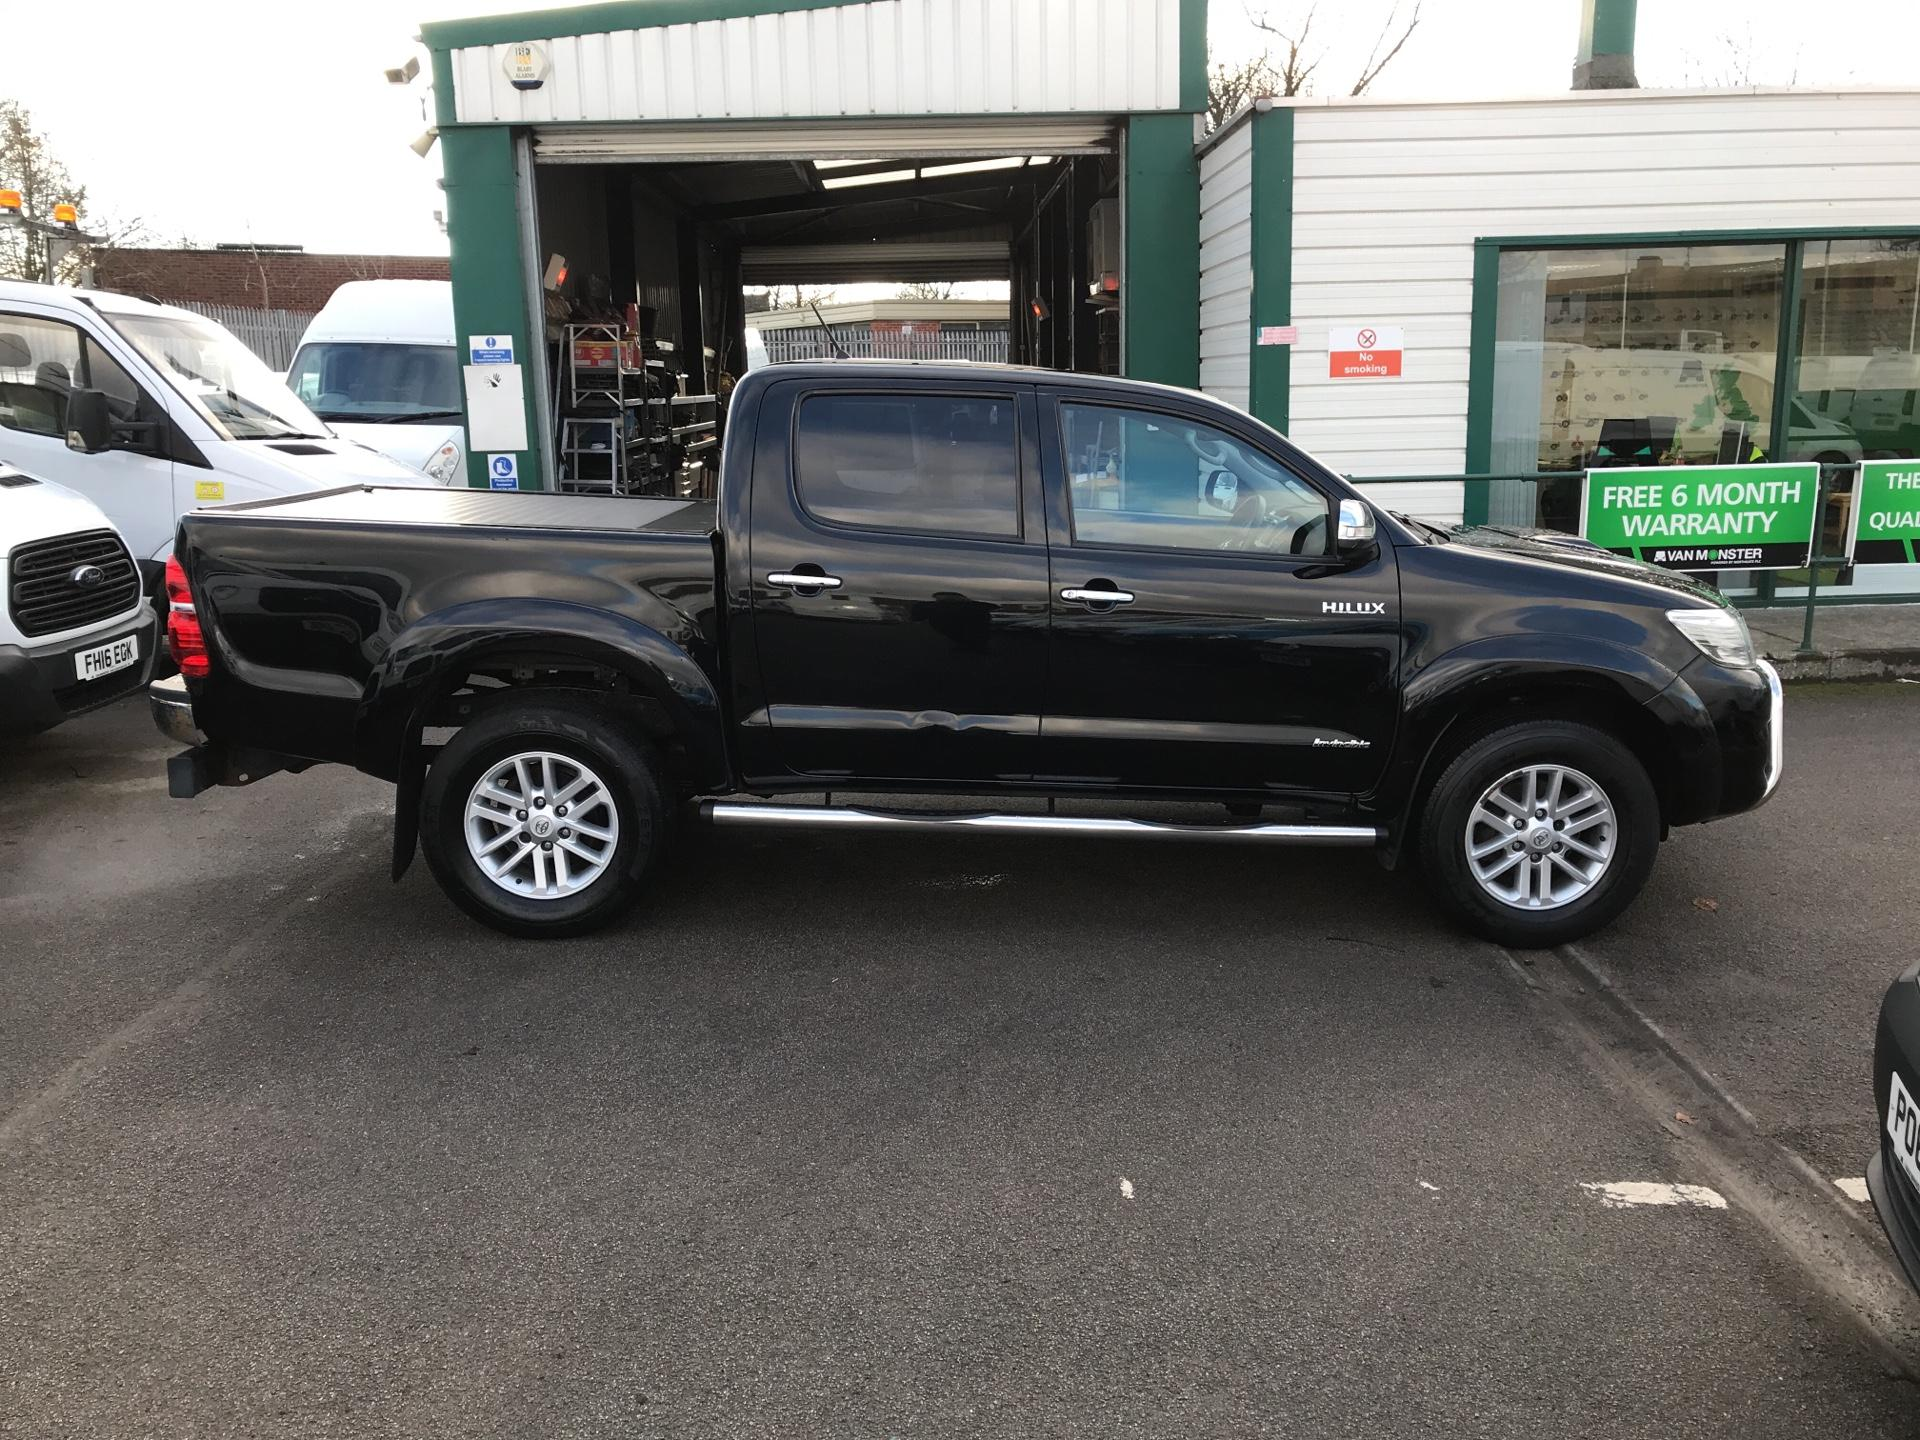 2016 Toyota Hilux DOUBLE CAB PICK UP 3.0 4WD 171 INVINCIBLE EURO 5  (DN65NCF) Image 2